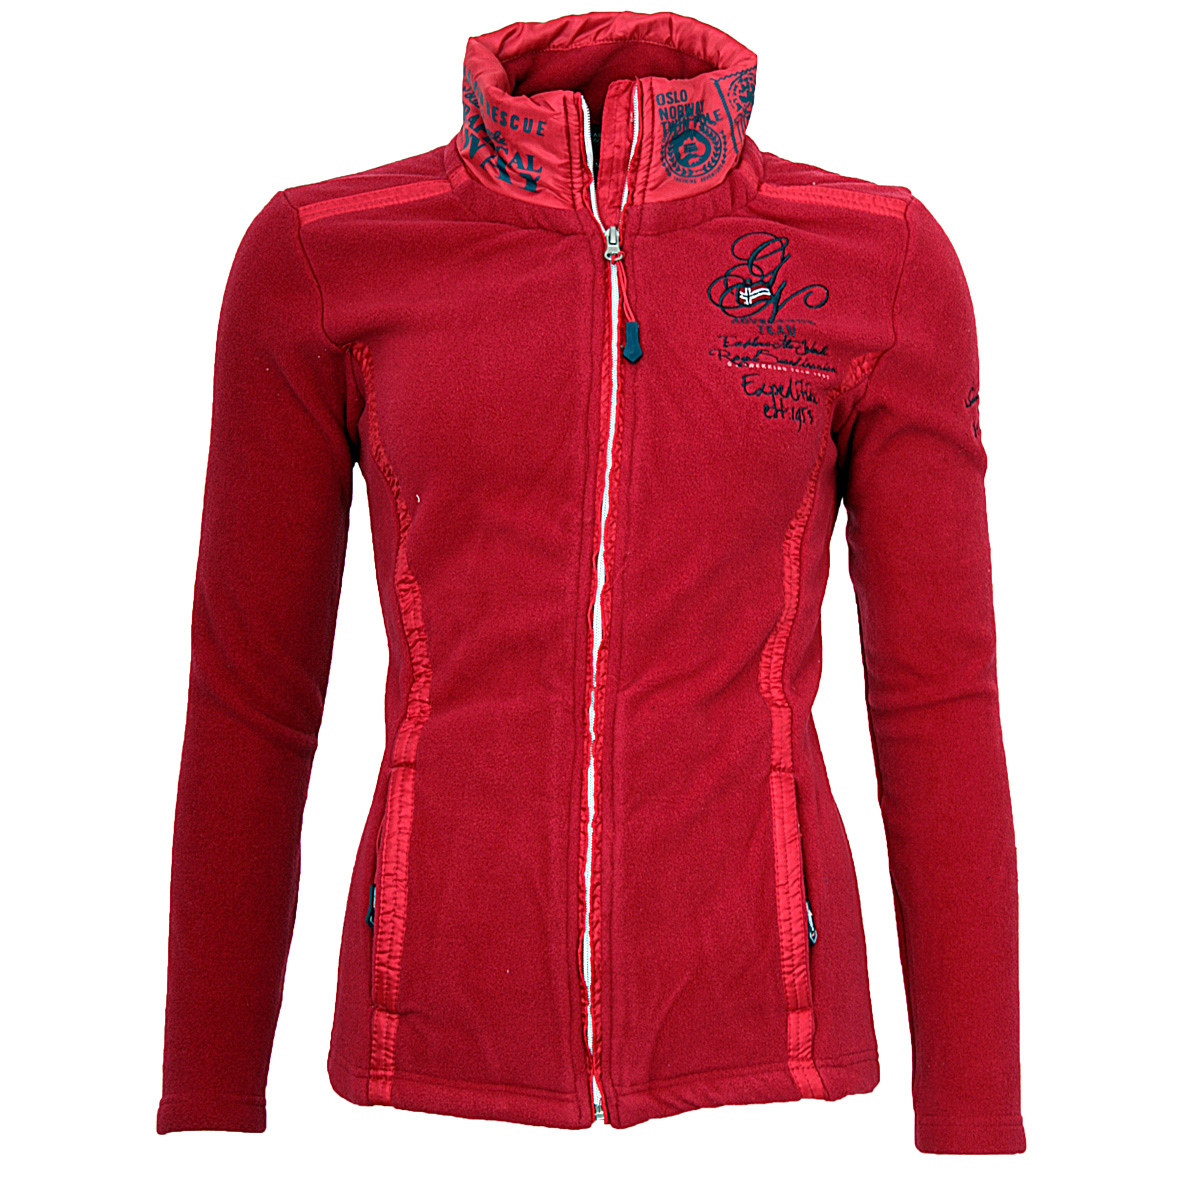 geographical norway damen polar fleece jacke sweatjacke. Black Bedroom Furniture Sets. Home Design Ideas